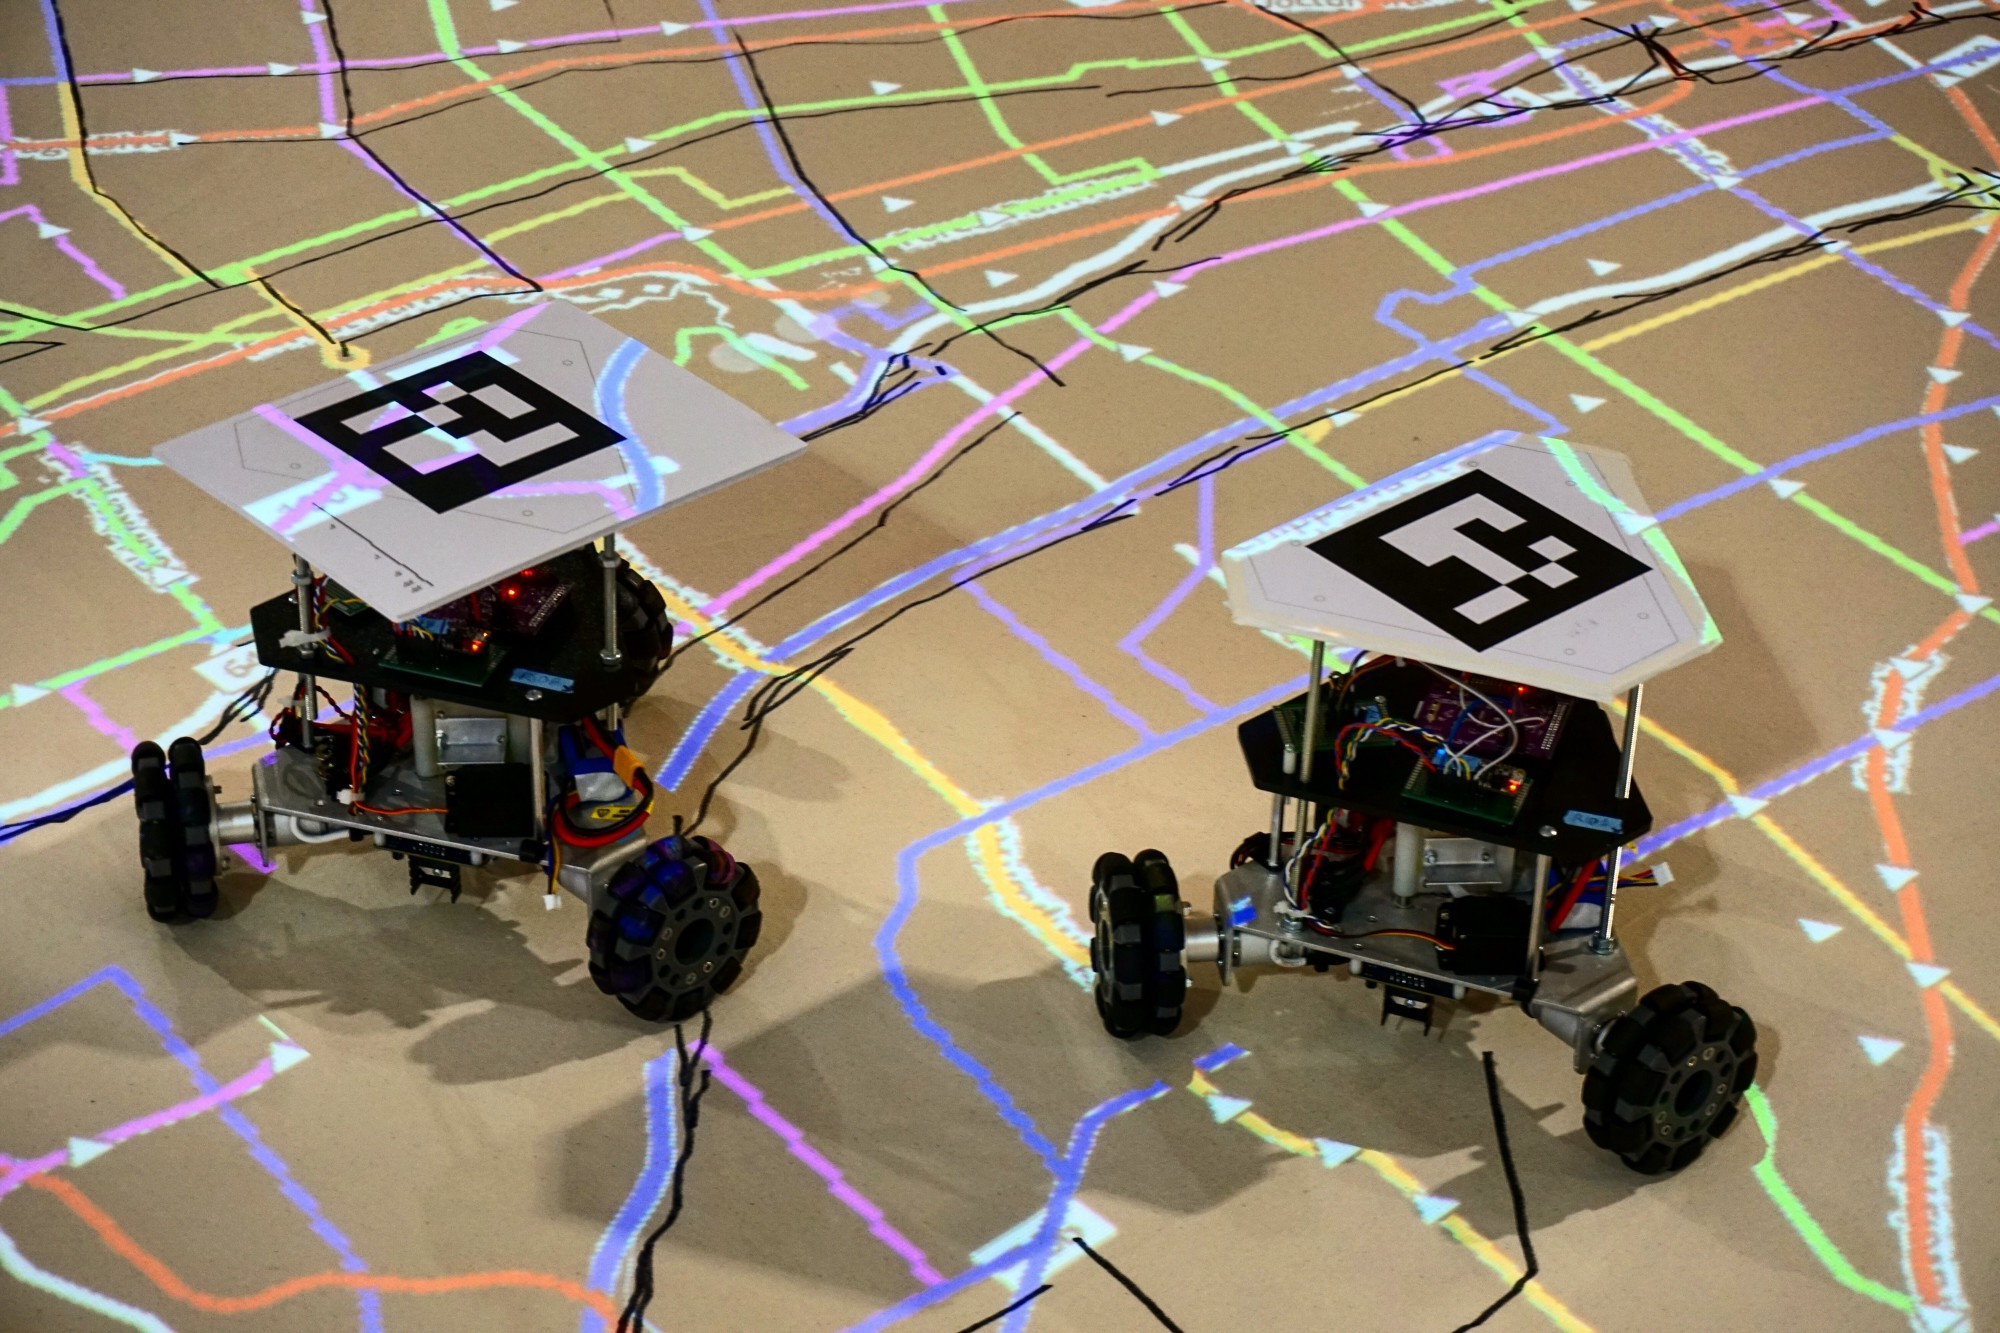 Drawing maps with robots, OpenCV, and Raspberry Pi